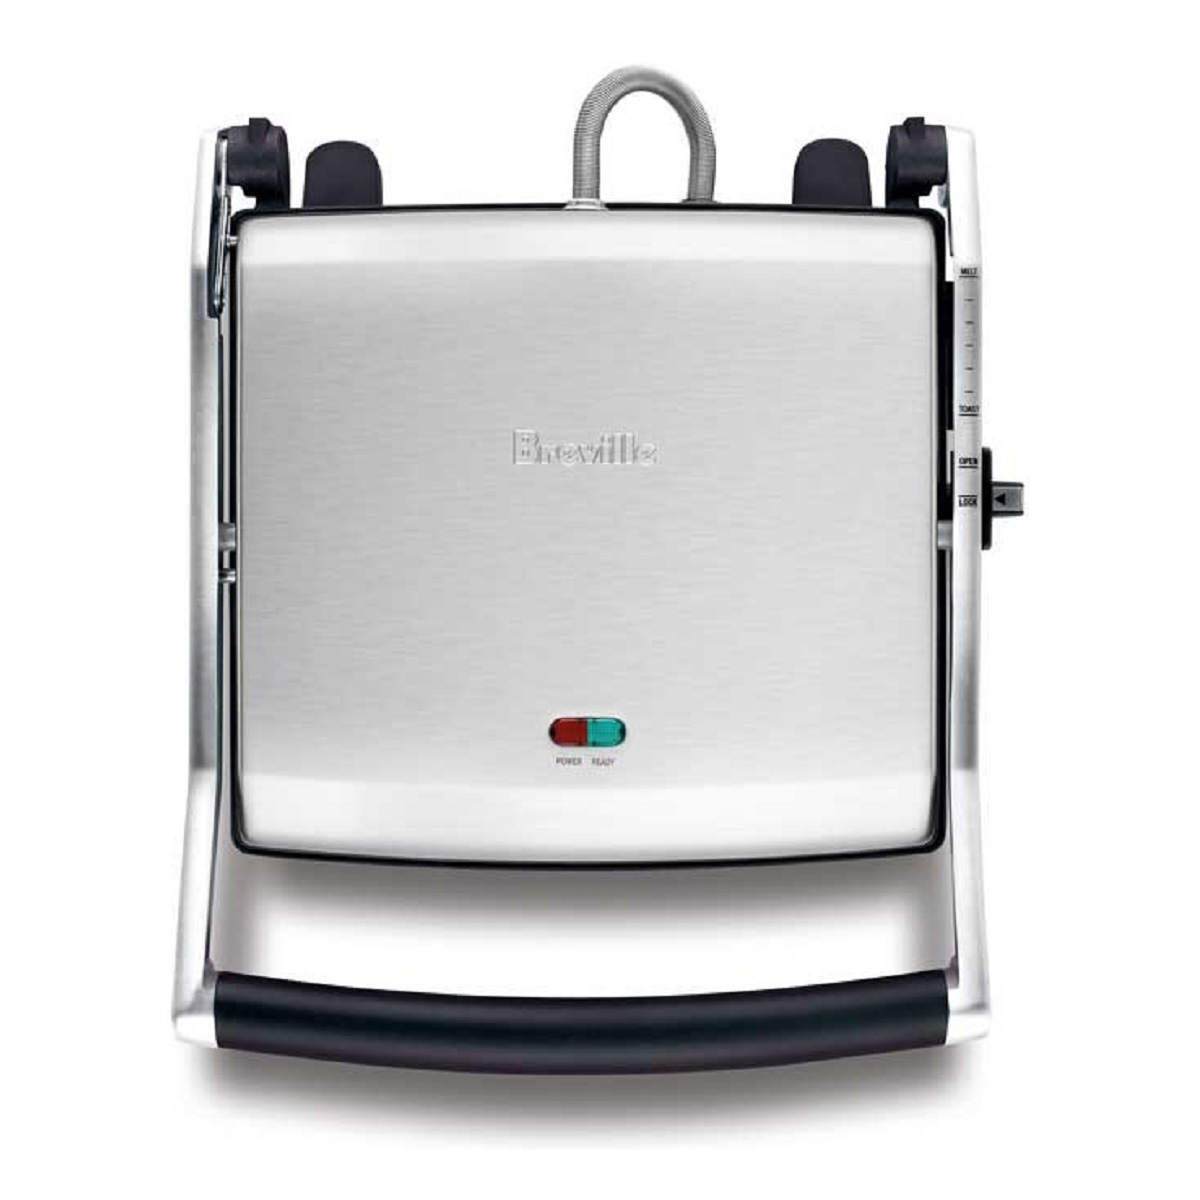 Breville Healthy Grill BSG540